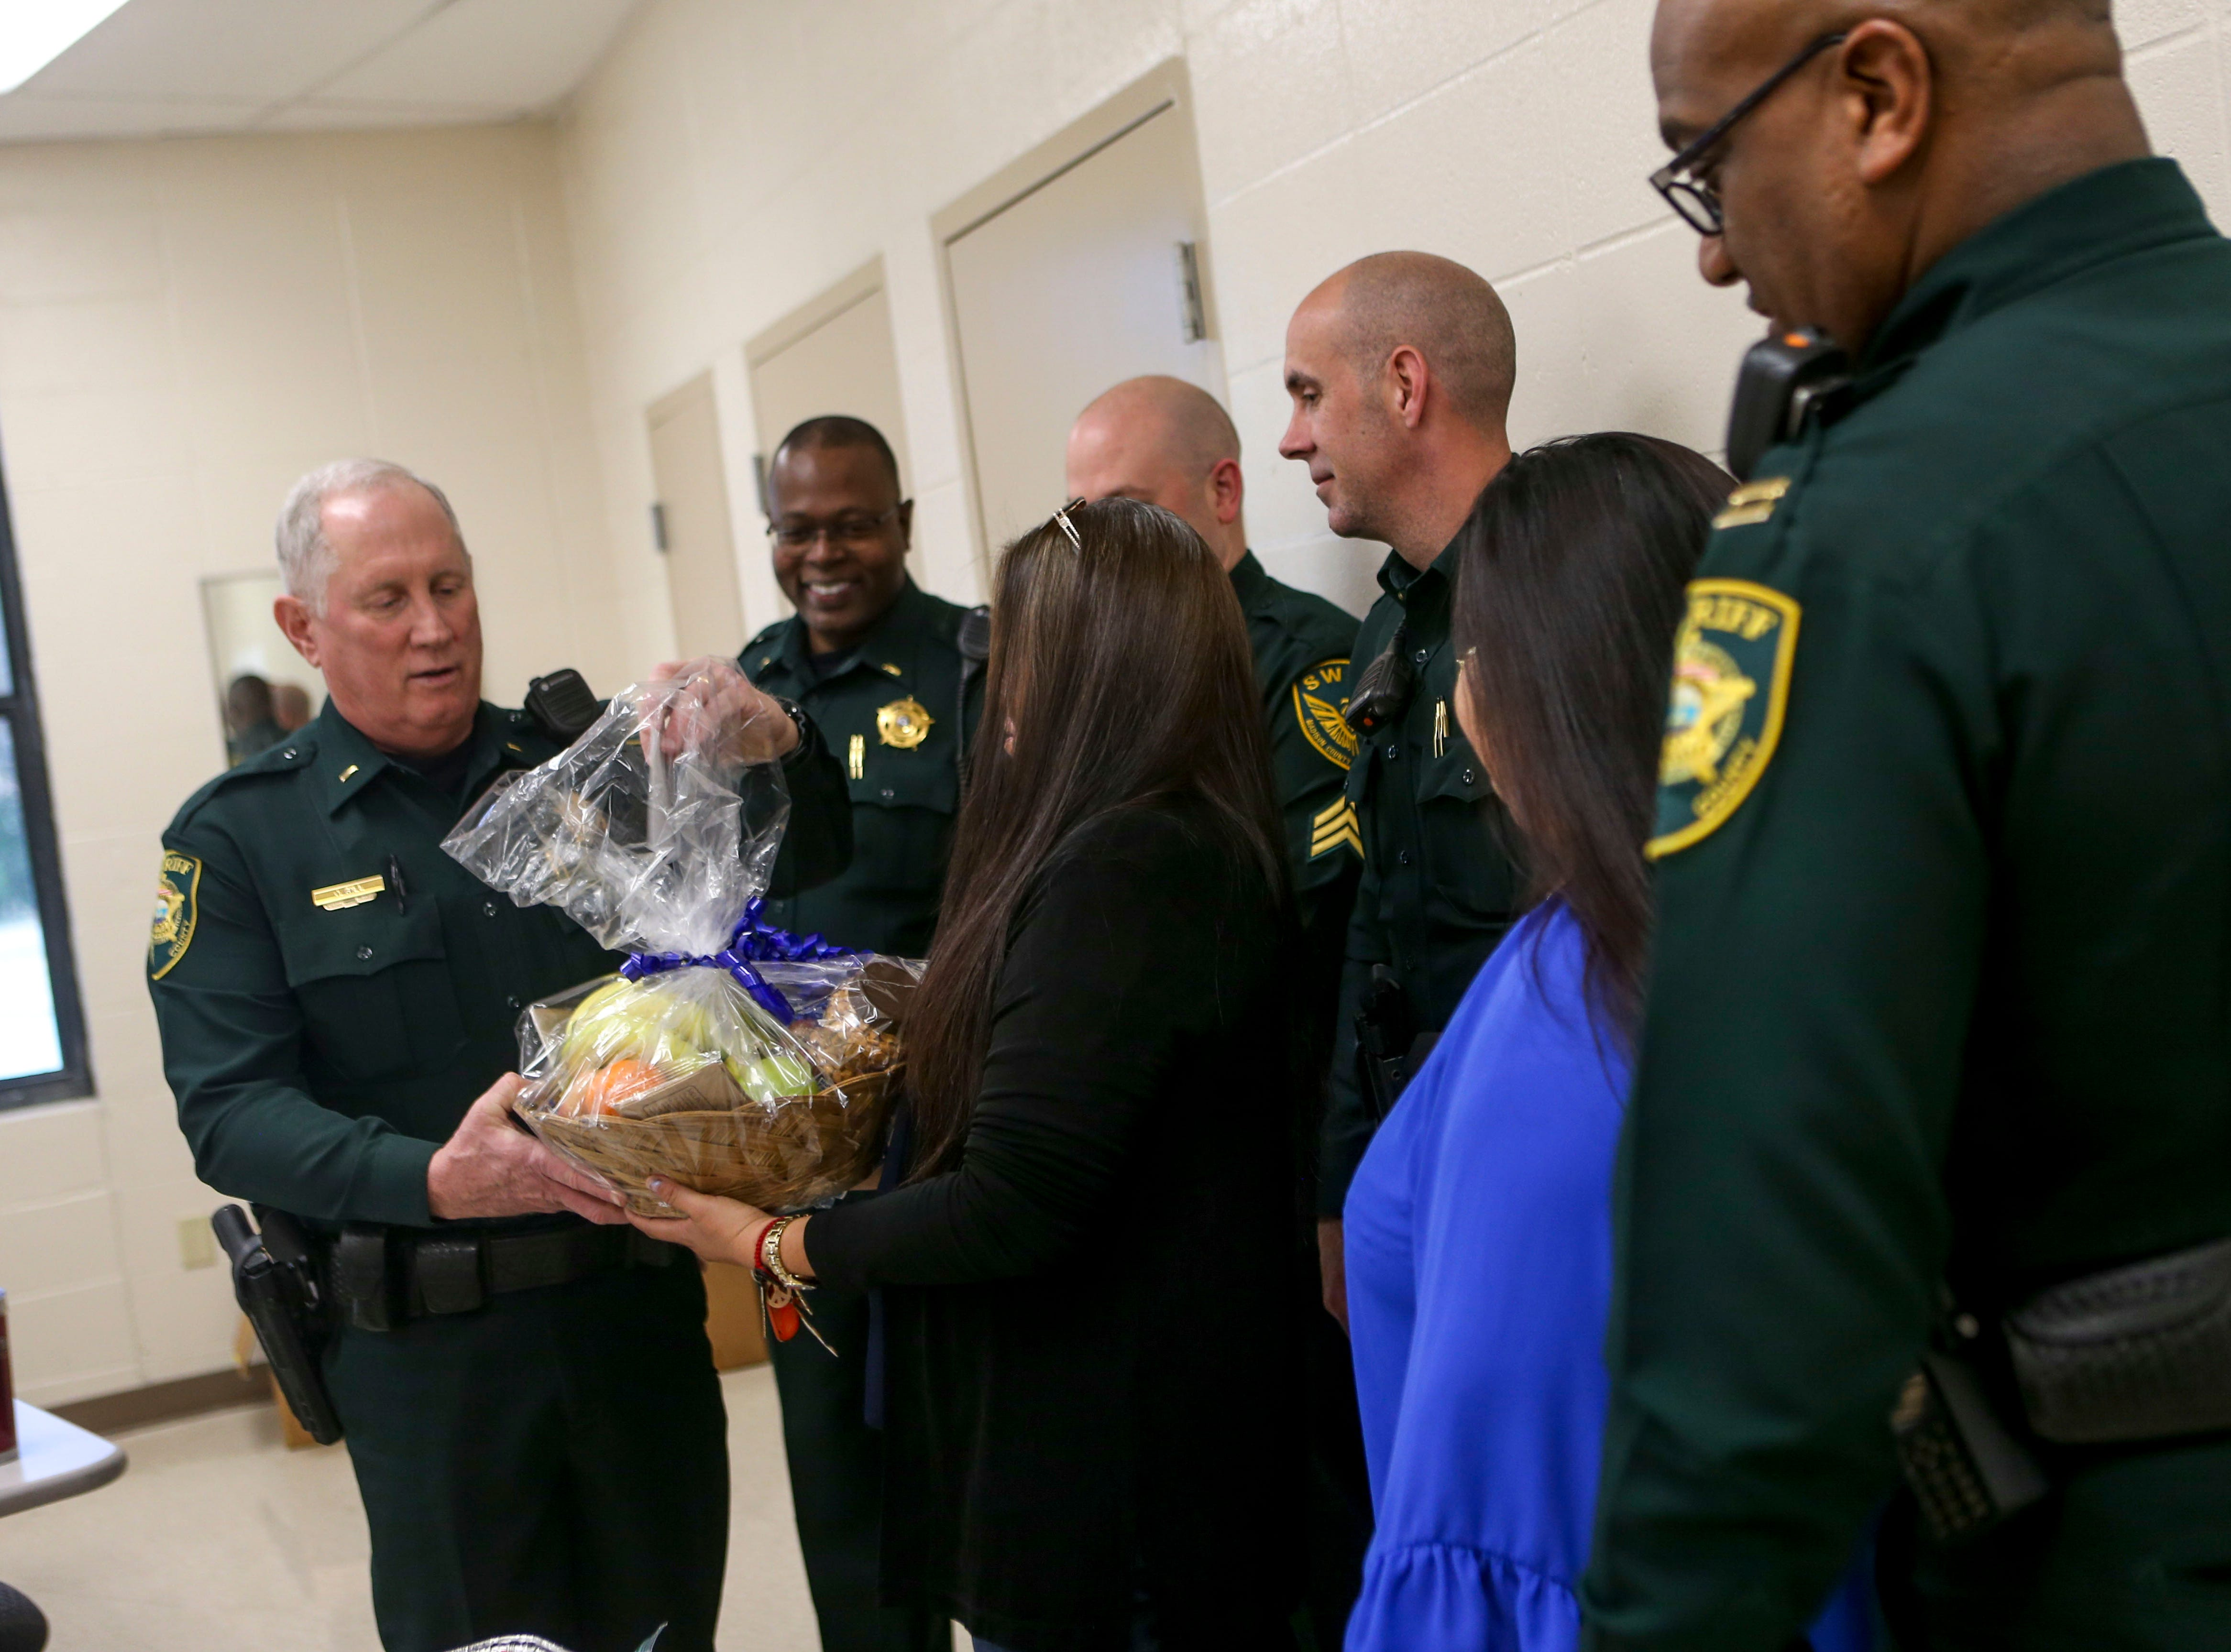 Madison County Sheriff's deputies stand for a photo with Estella Villalobos, Maria A. Vela, and Emily Crabtree after the ladies brought snacks for the deputies on National Law Enforcement Day at Madison County Sheriff's Office in Denmark, Tenn., on Wednesday, Jan. 9, 2019.